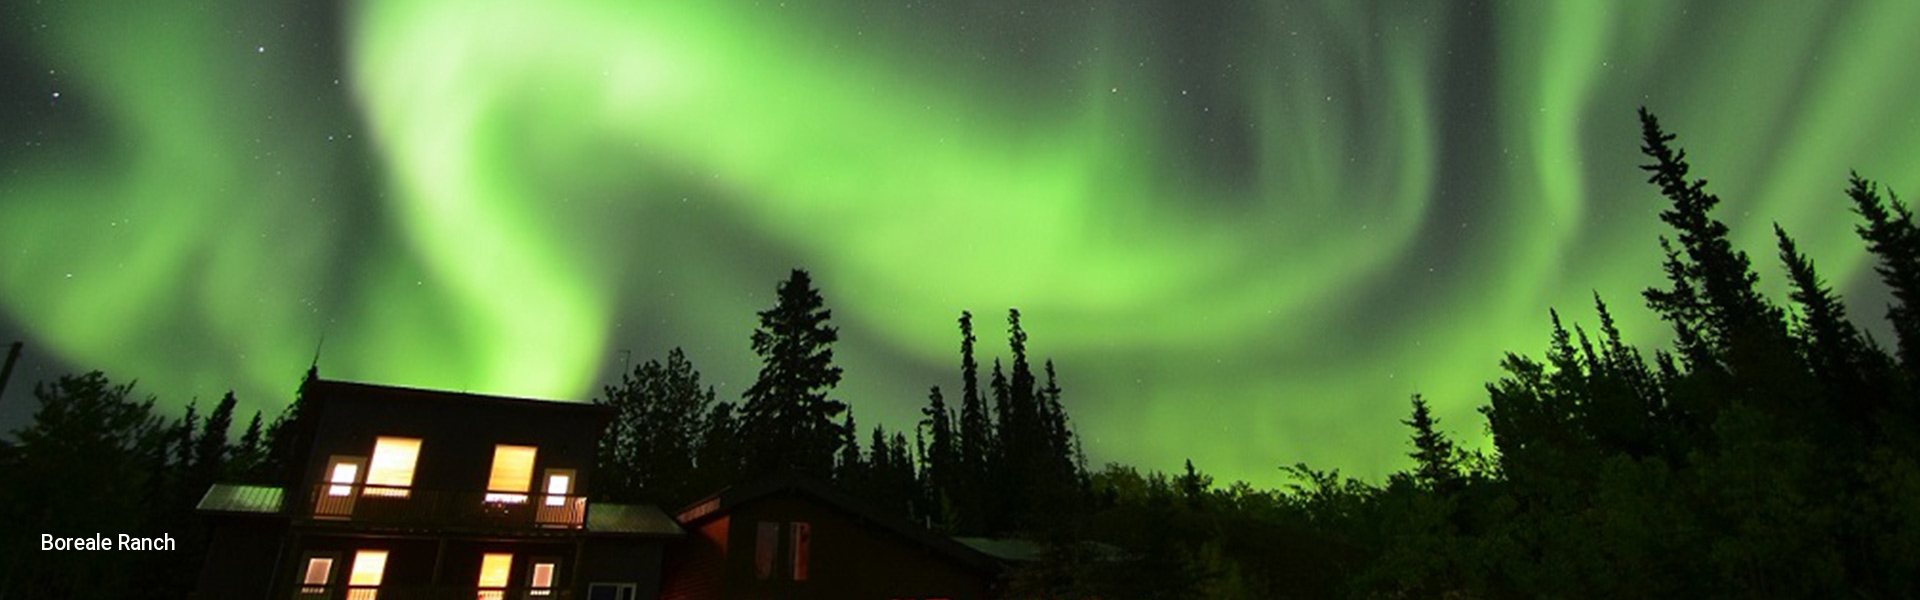 Northern Lights over the Boreale Ranch